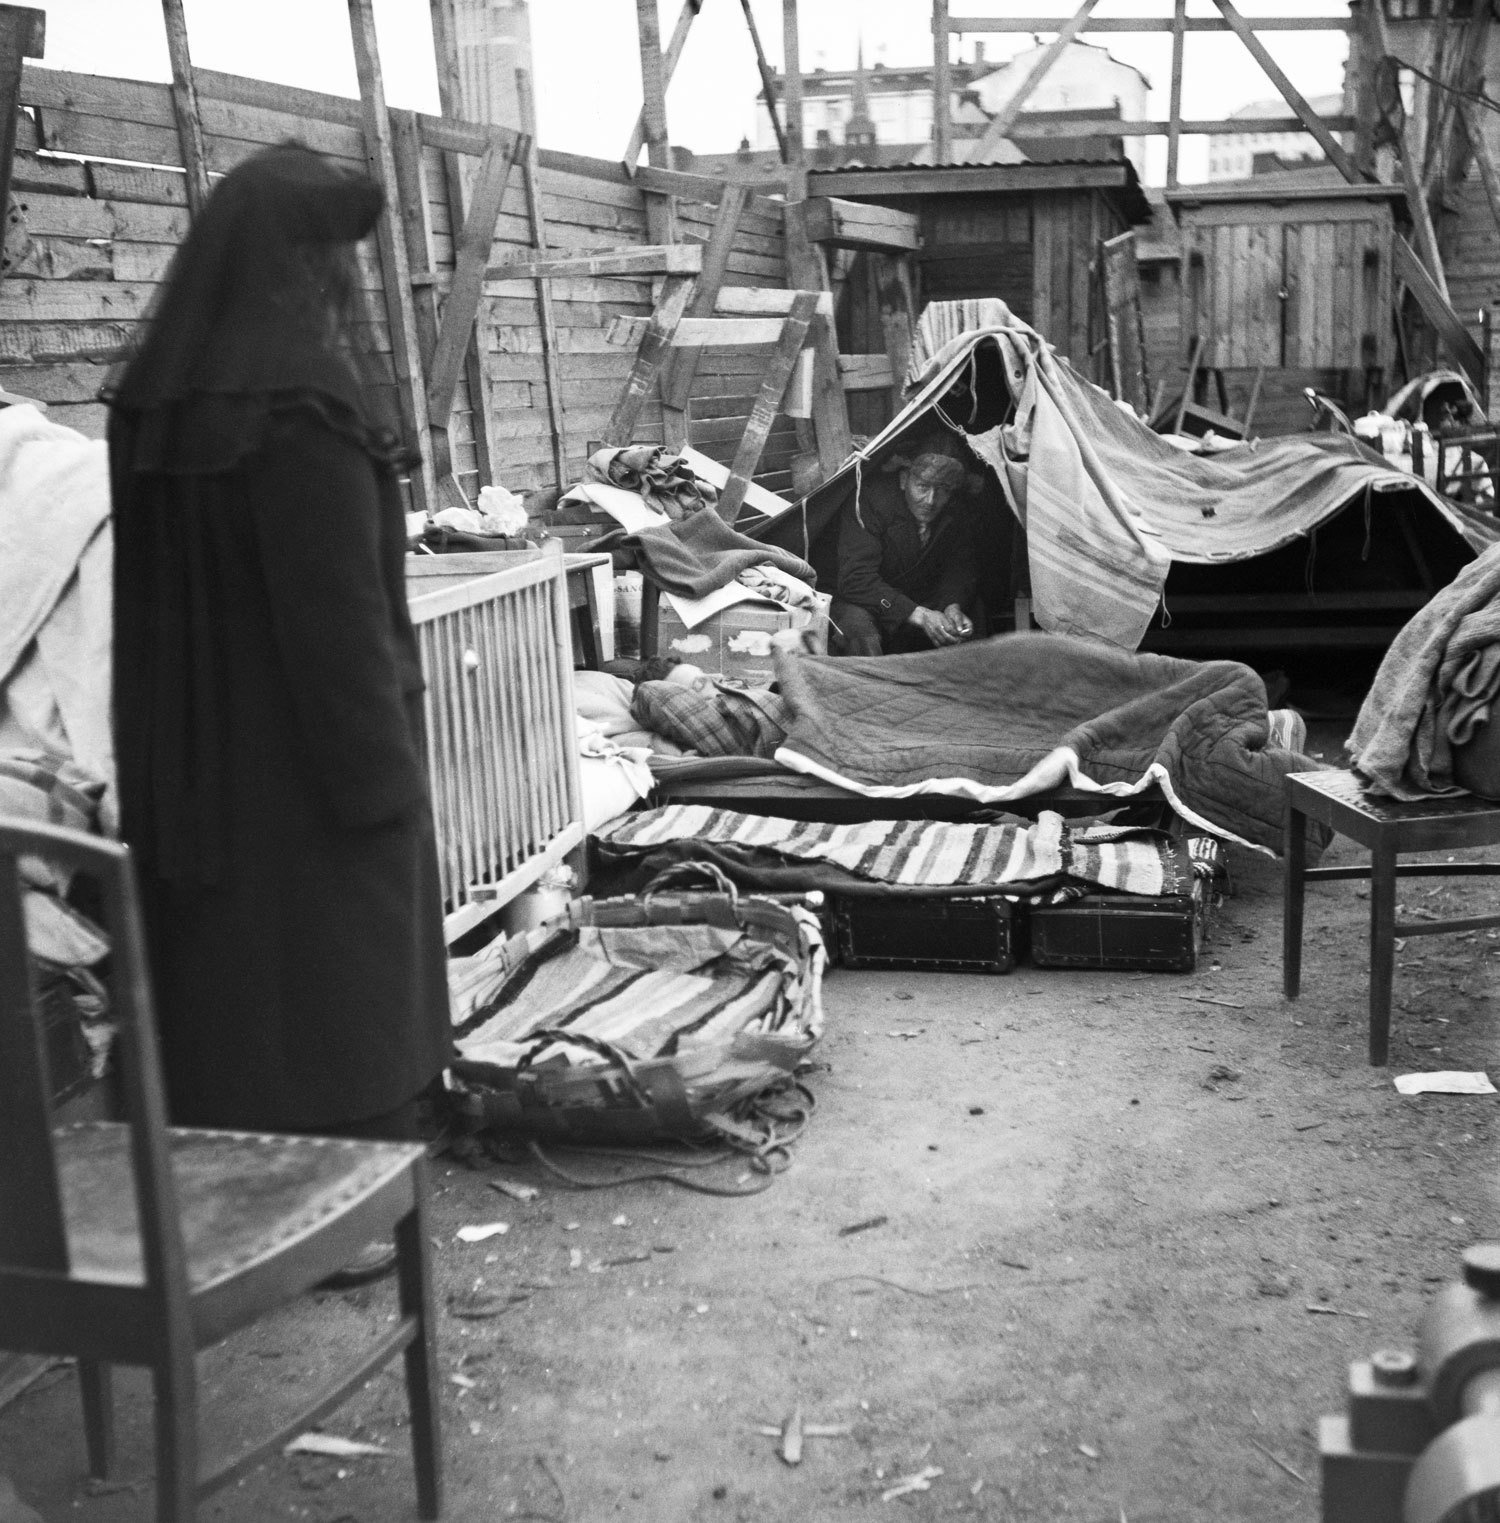 Homeless family at Hakaniemenranta, Helsinki, 1950s, UA Saarinen, Press Photo archive JOKA, Finnish Heritage Agency, CC BY-NC-ND